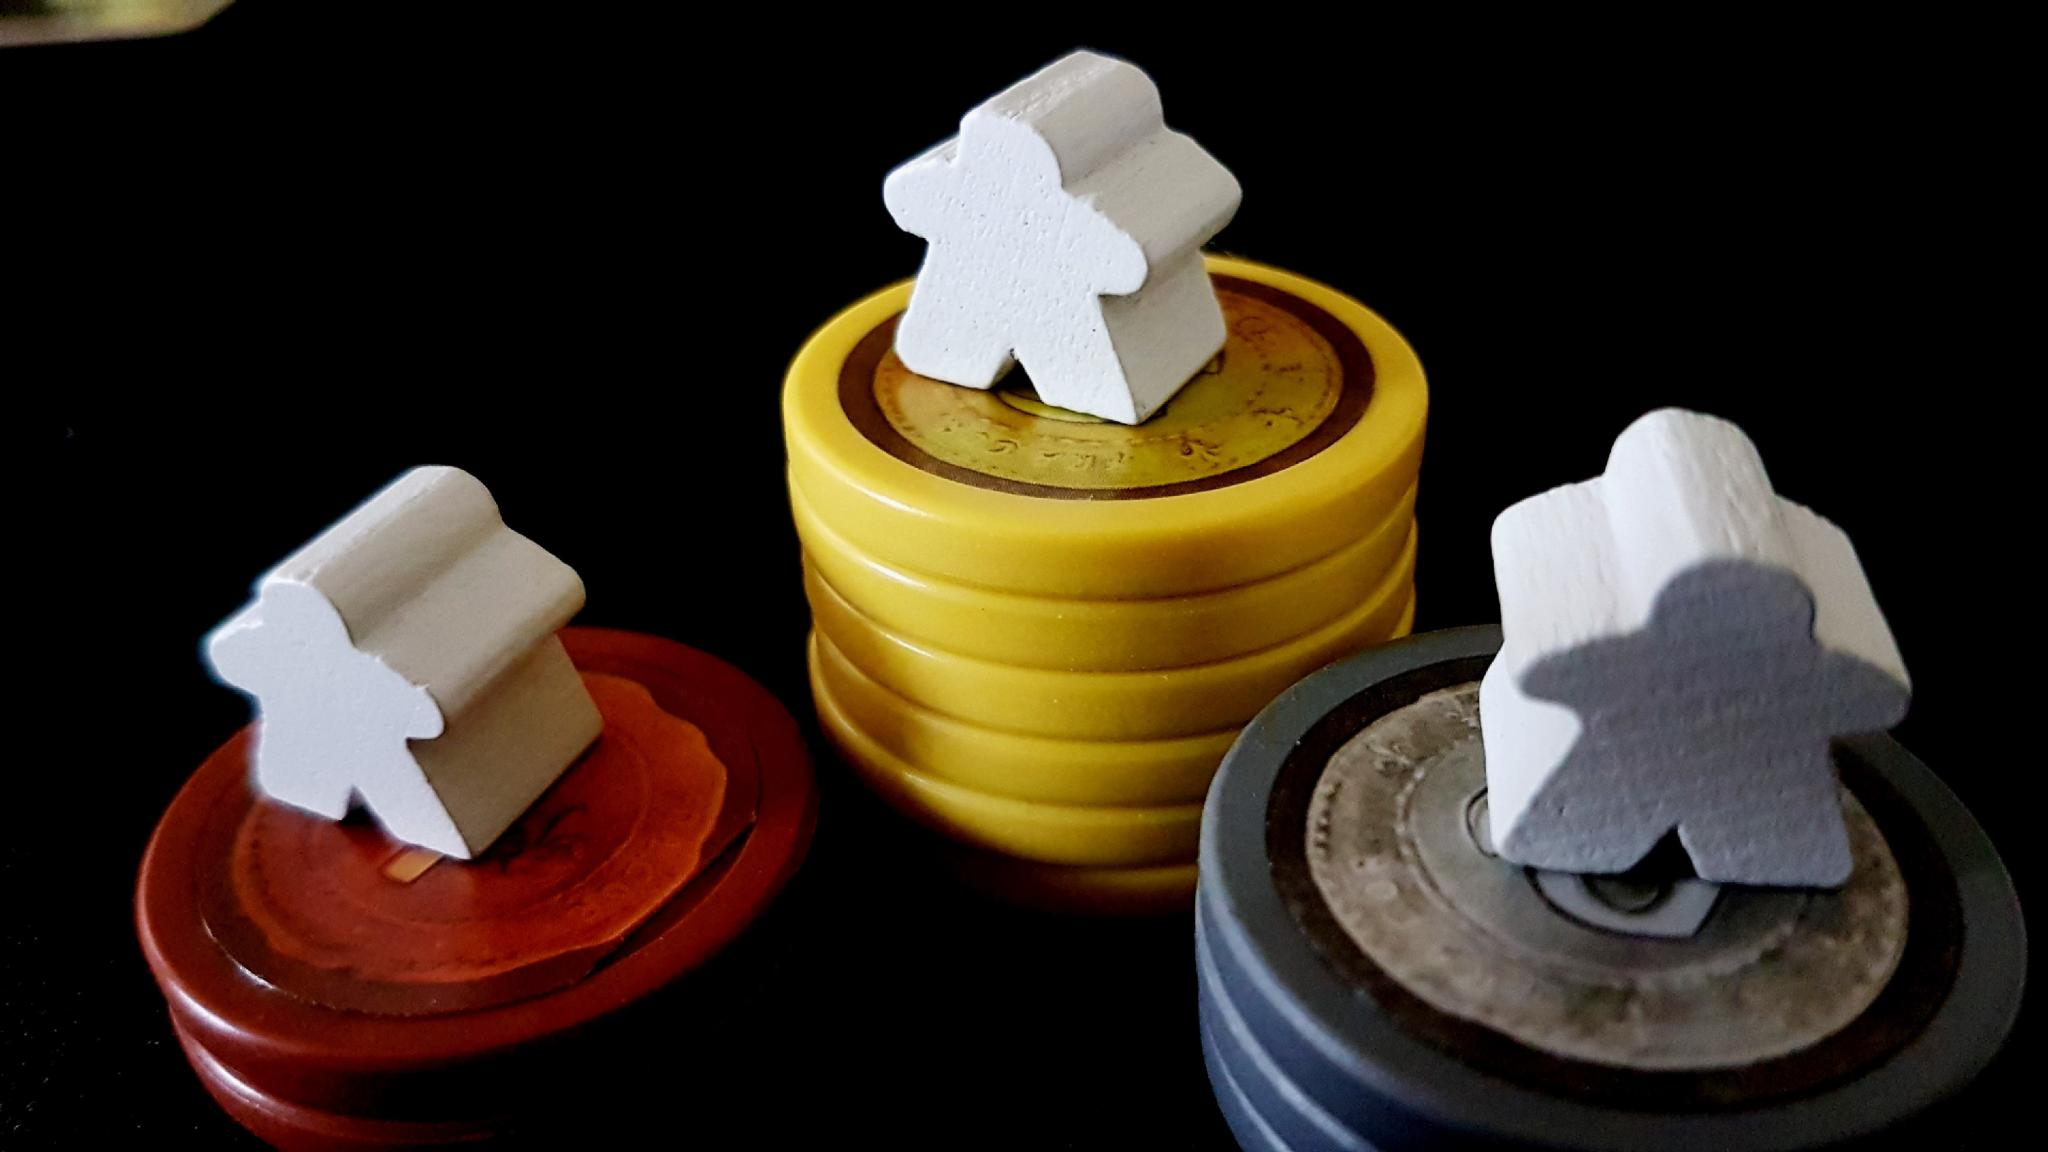 Meeples on Piles of Tokens